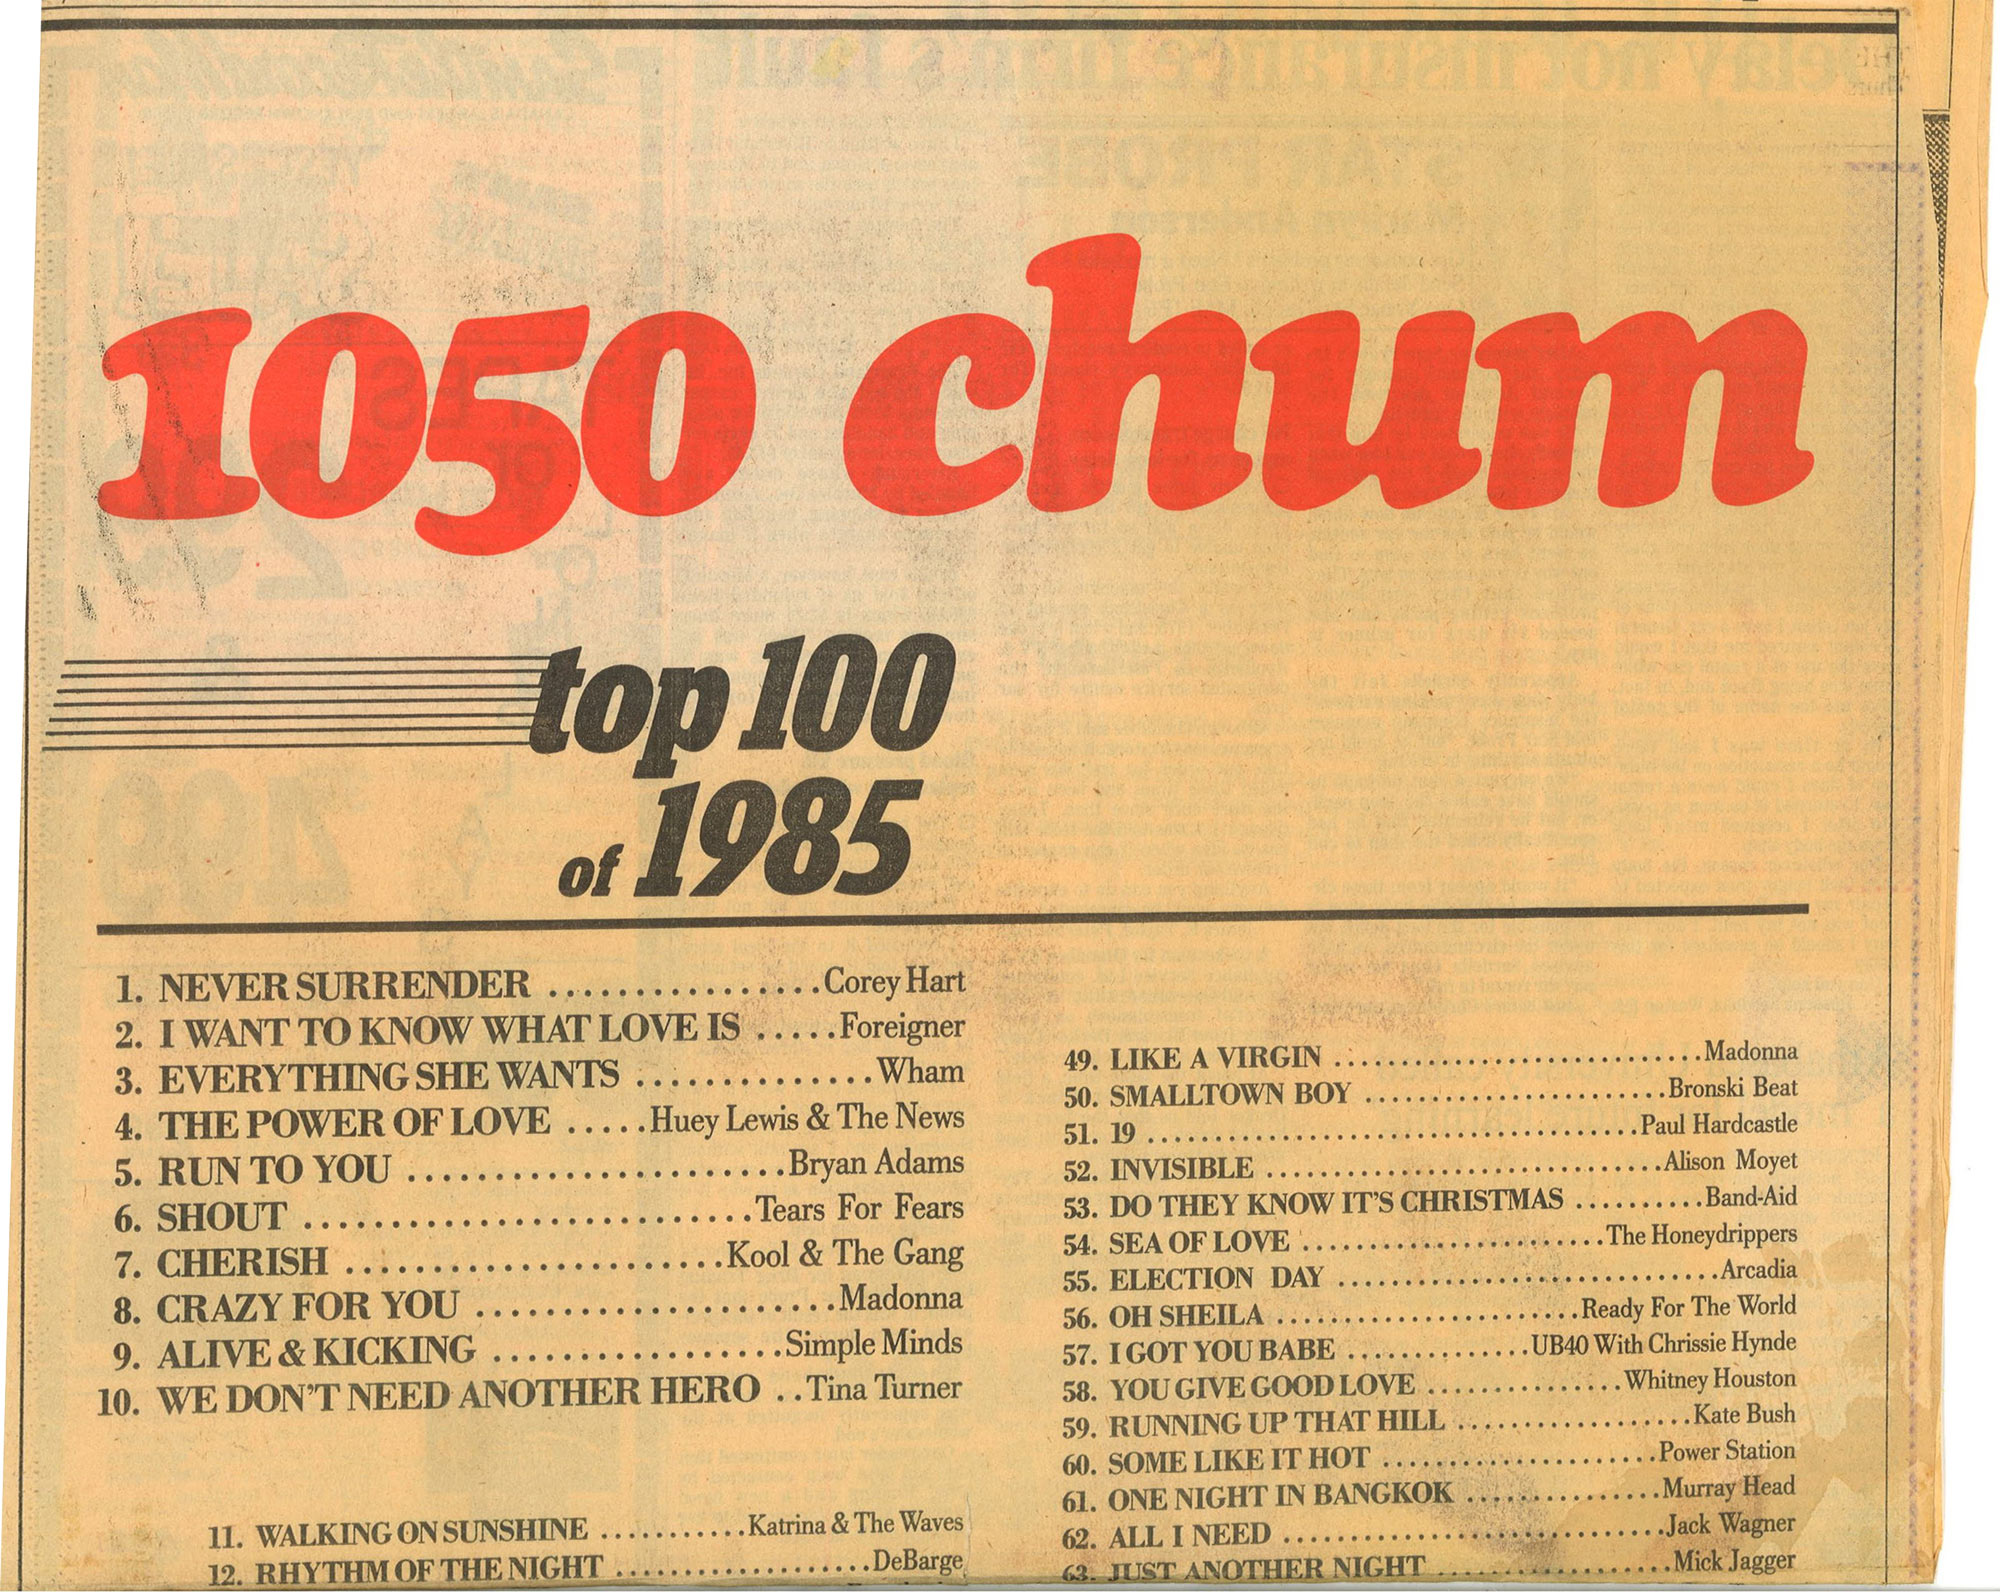 Toronto top songs 1985